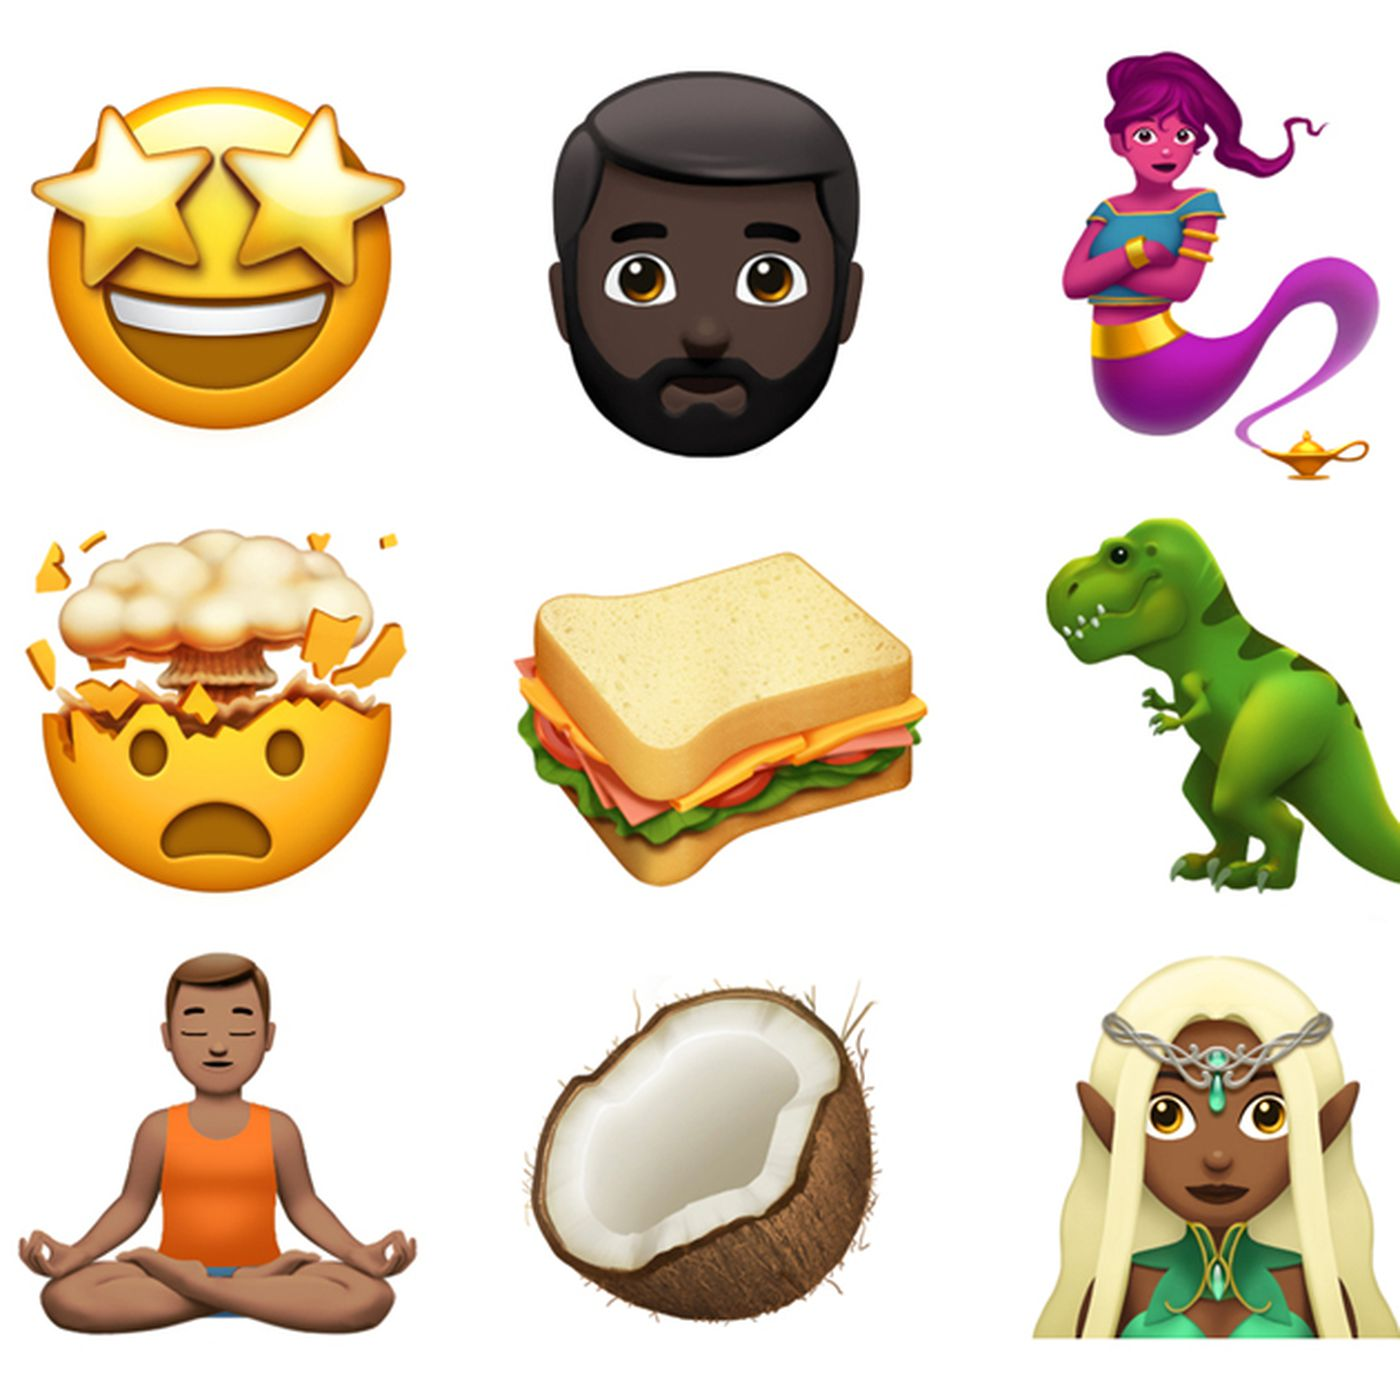 Apple shows off some of the new emoji coming to iOS and